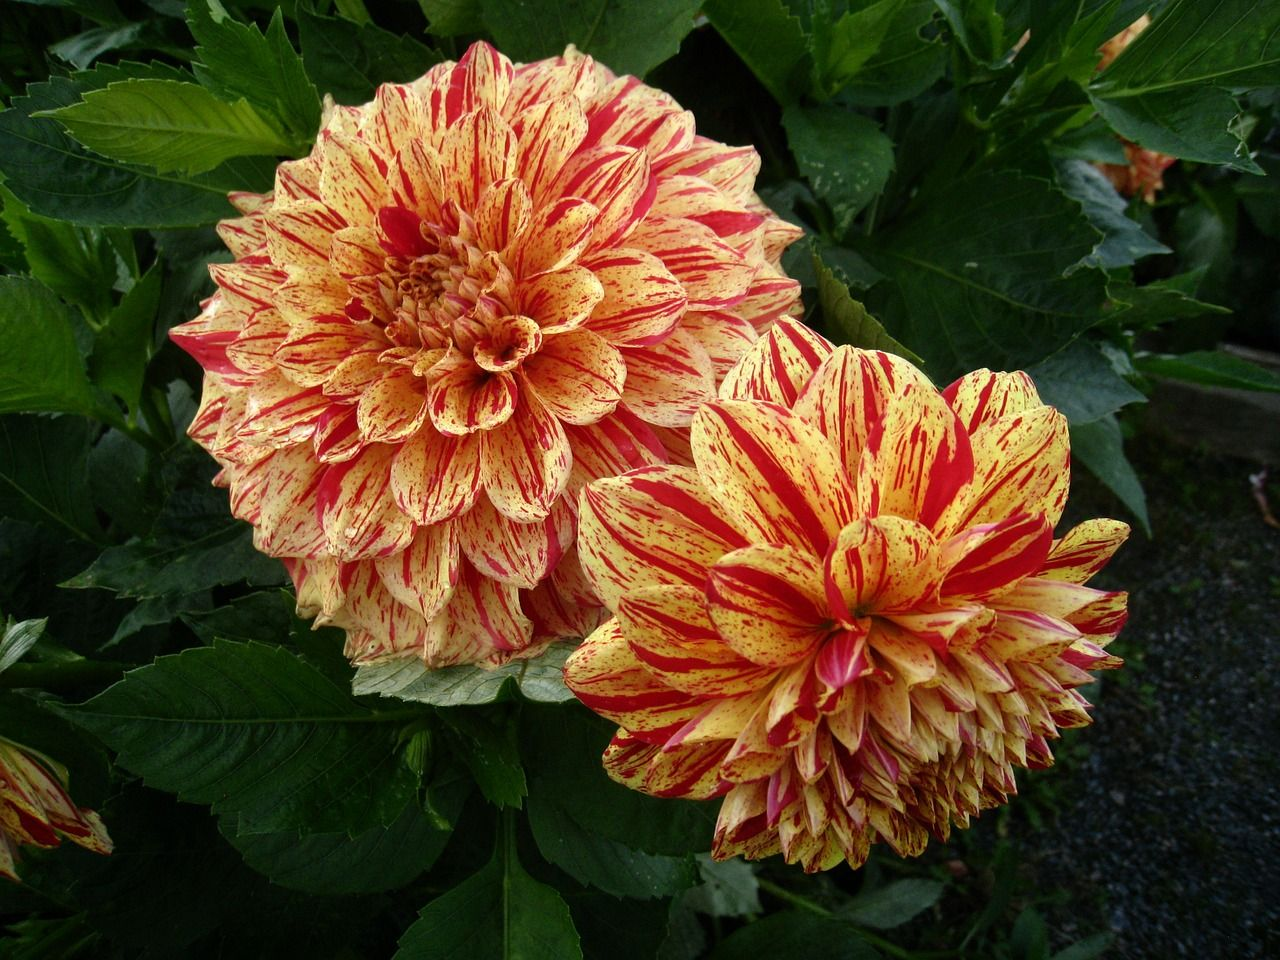 Fabulous Dahlias Review Of Four English Wors That Start With U For Graduate Entry Tests Flowers Dahlia Flower Dahlia